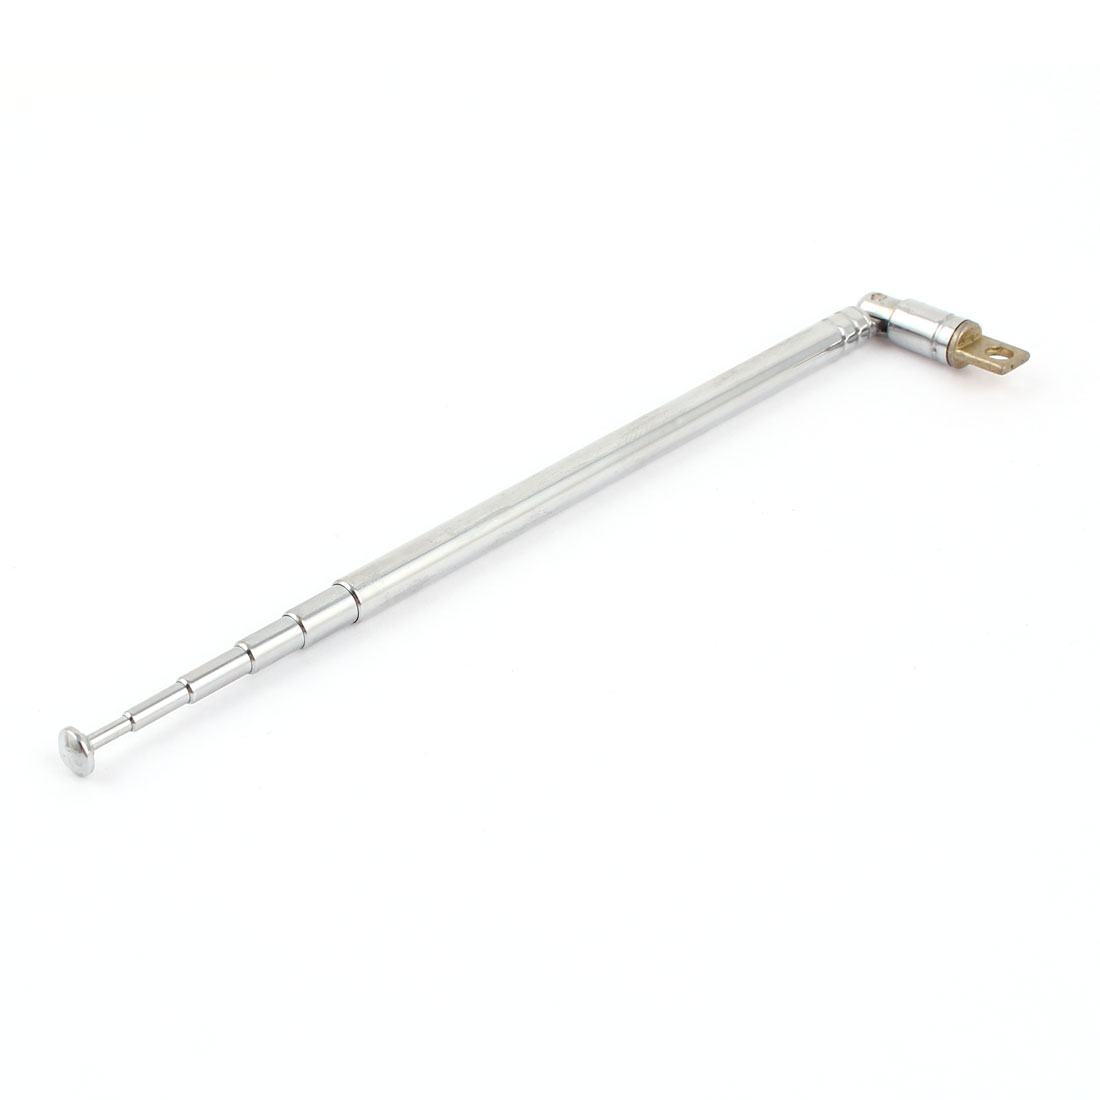 13.5cm to 50cm 6 Sections Telescoping Antenna Aerial Silver Tone for AM Radio TV